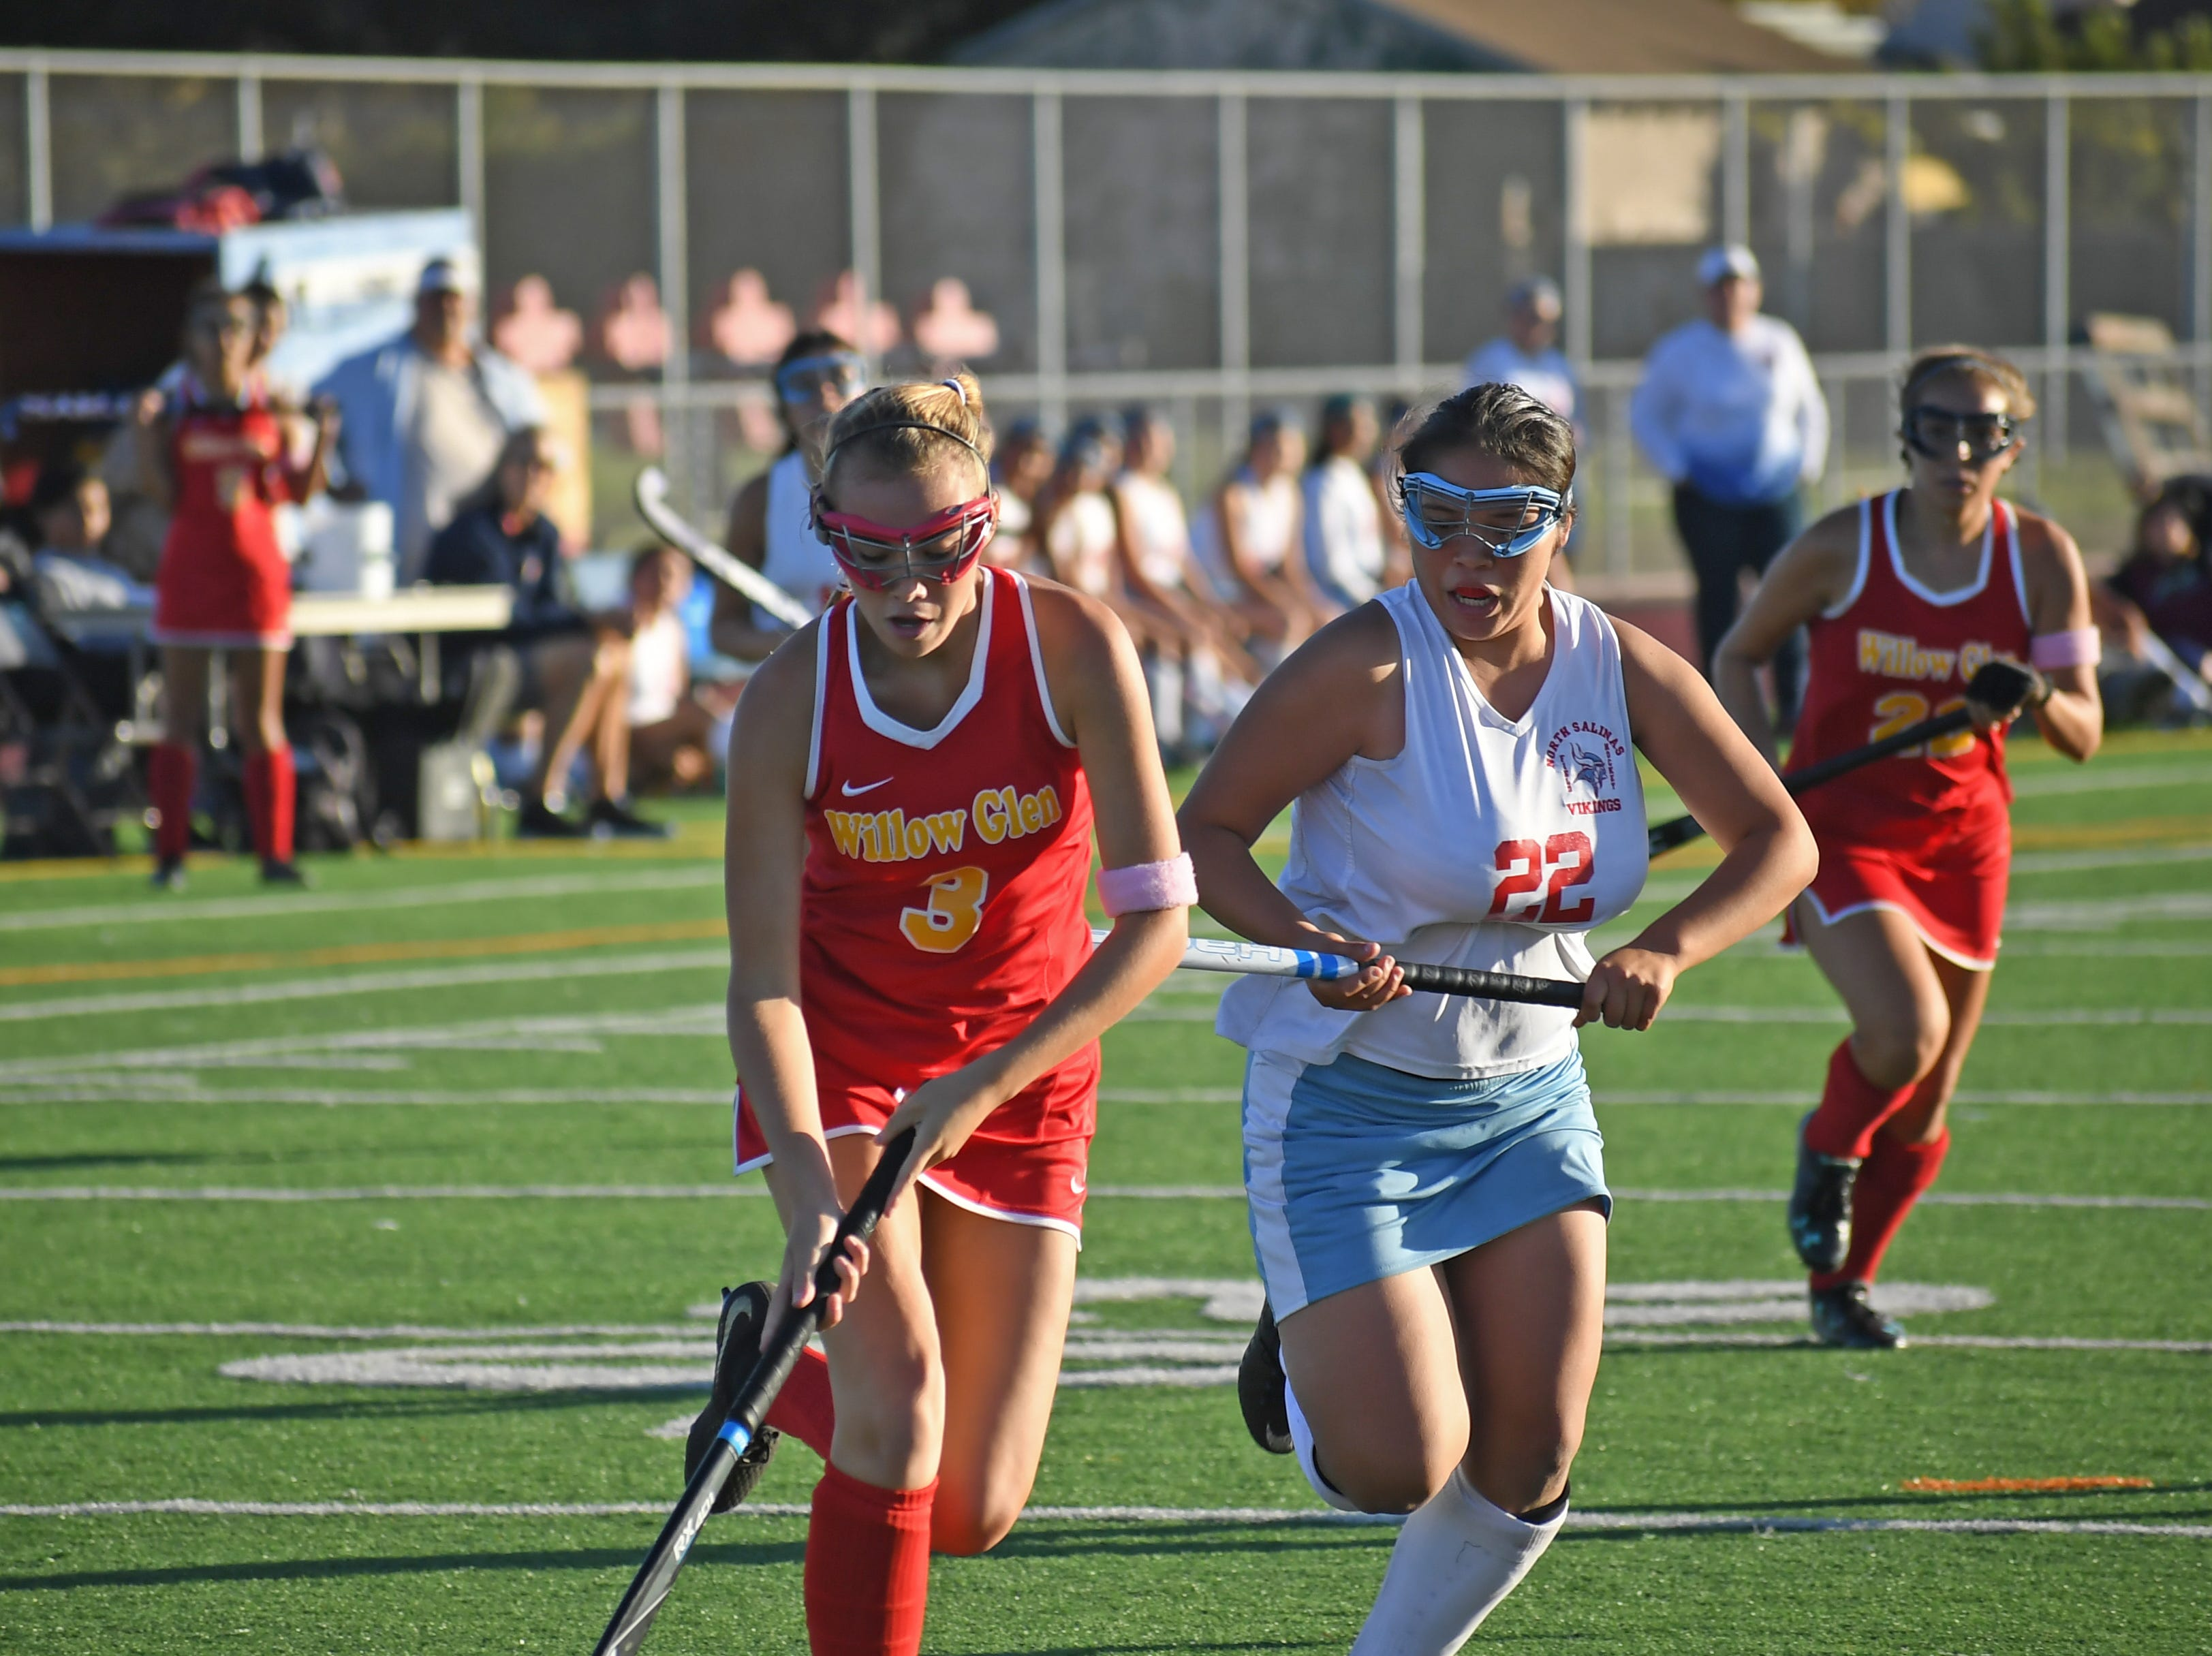 Sophomore Precious Eady (22) sprints to defend a run by one of the Willow Glen midfielders.